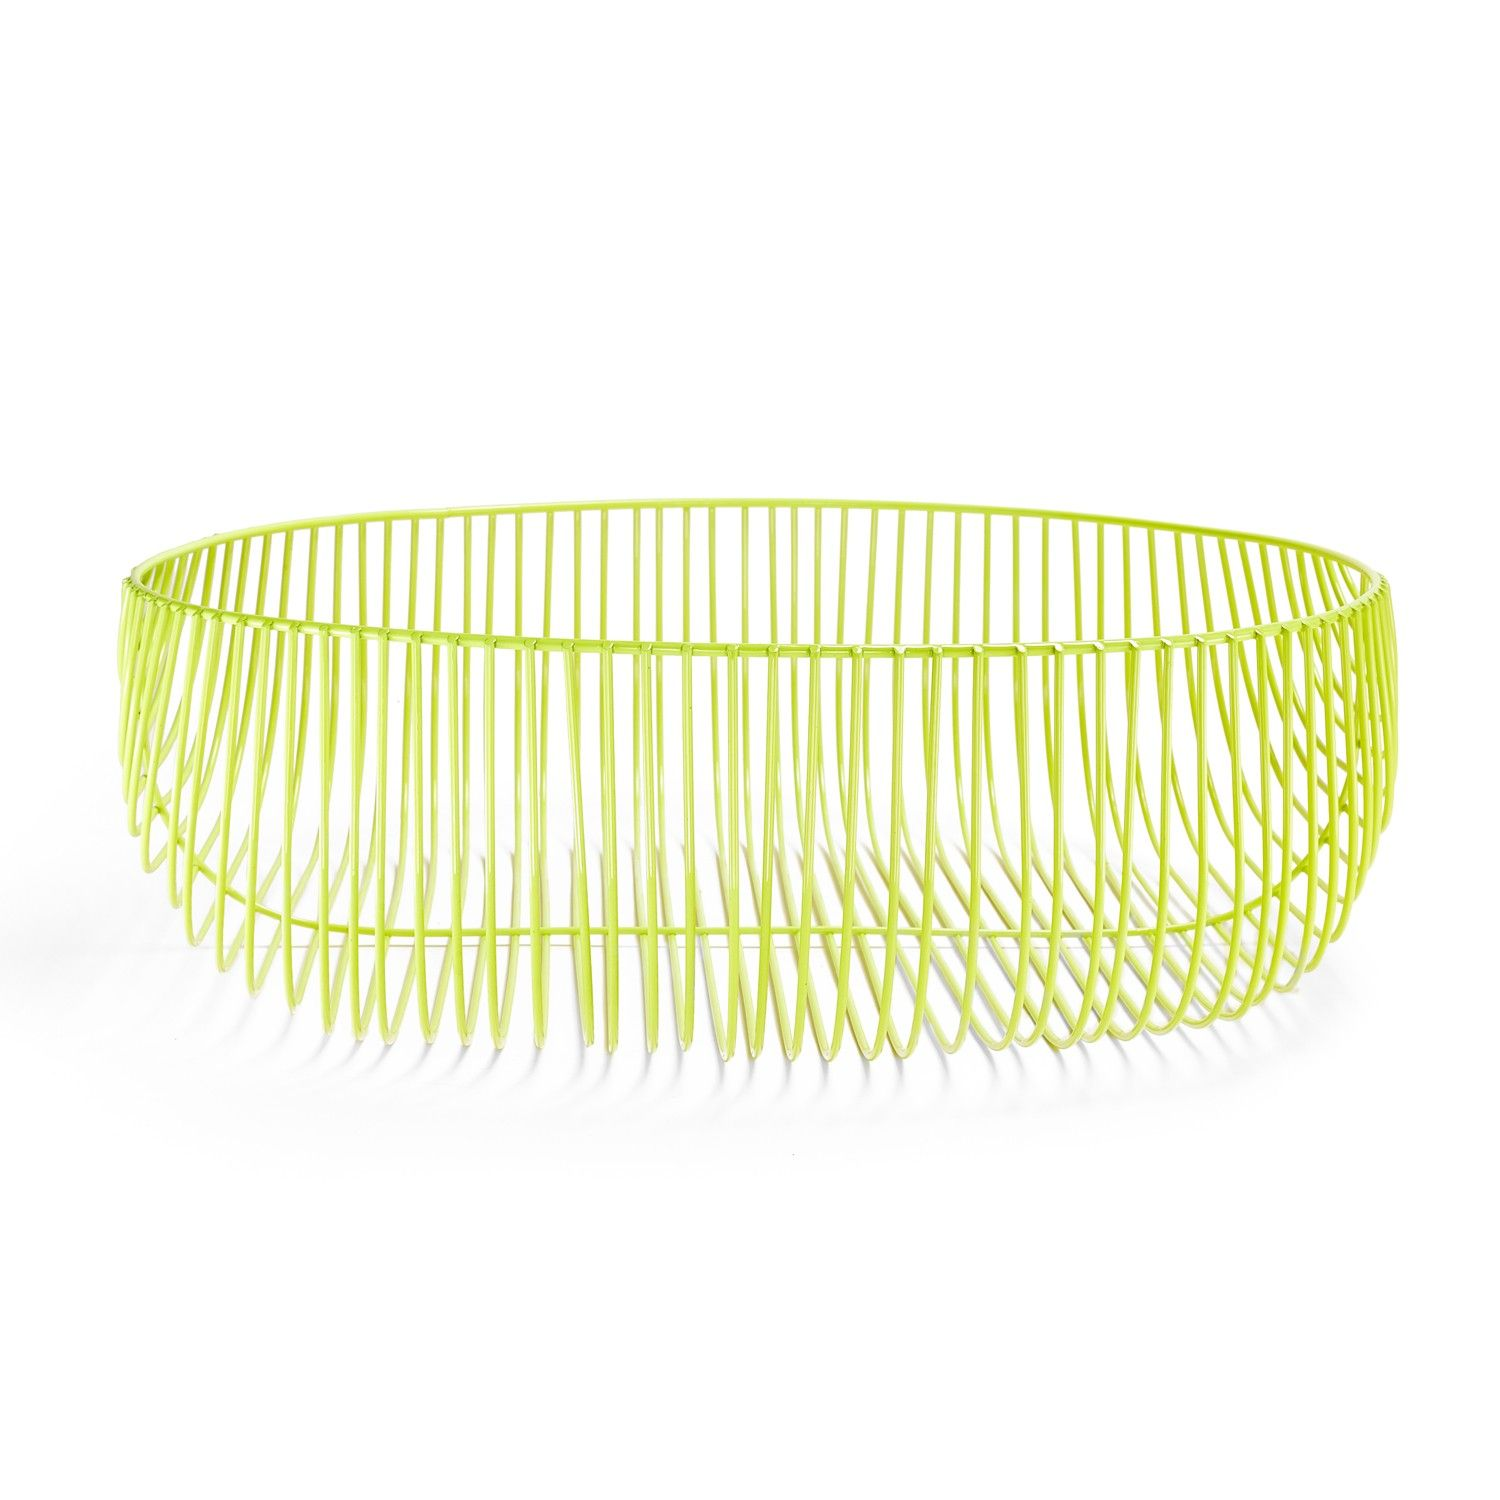 Interpreting basket-weaving techniques in bright, playful style, the ...